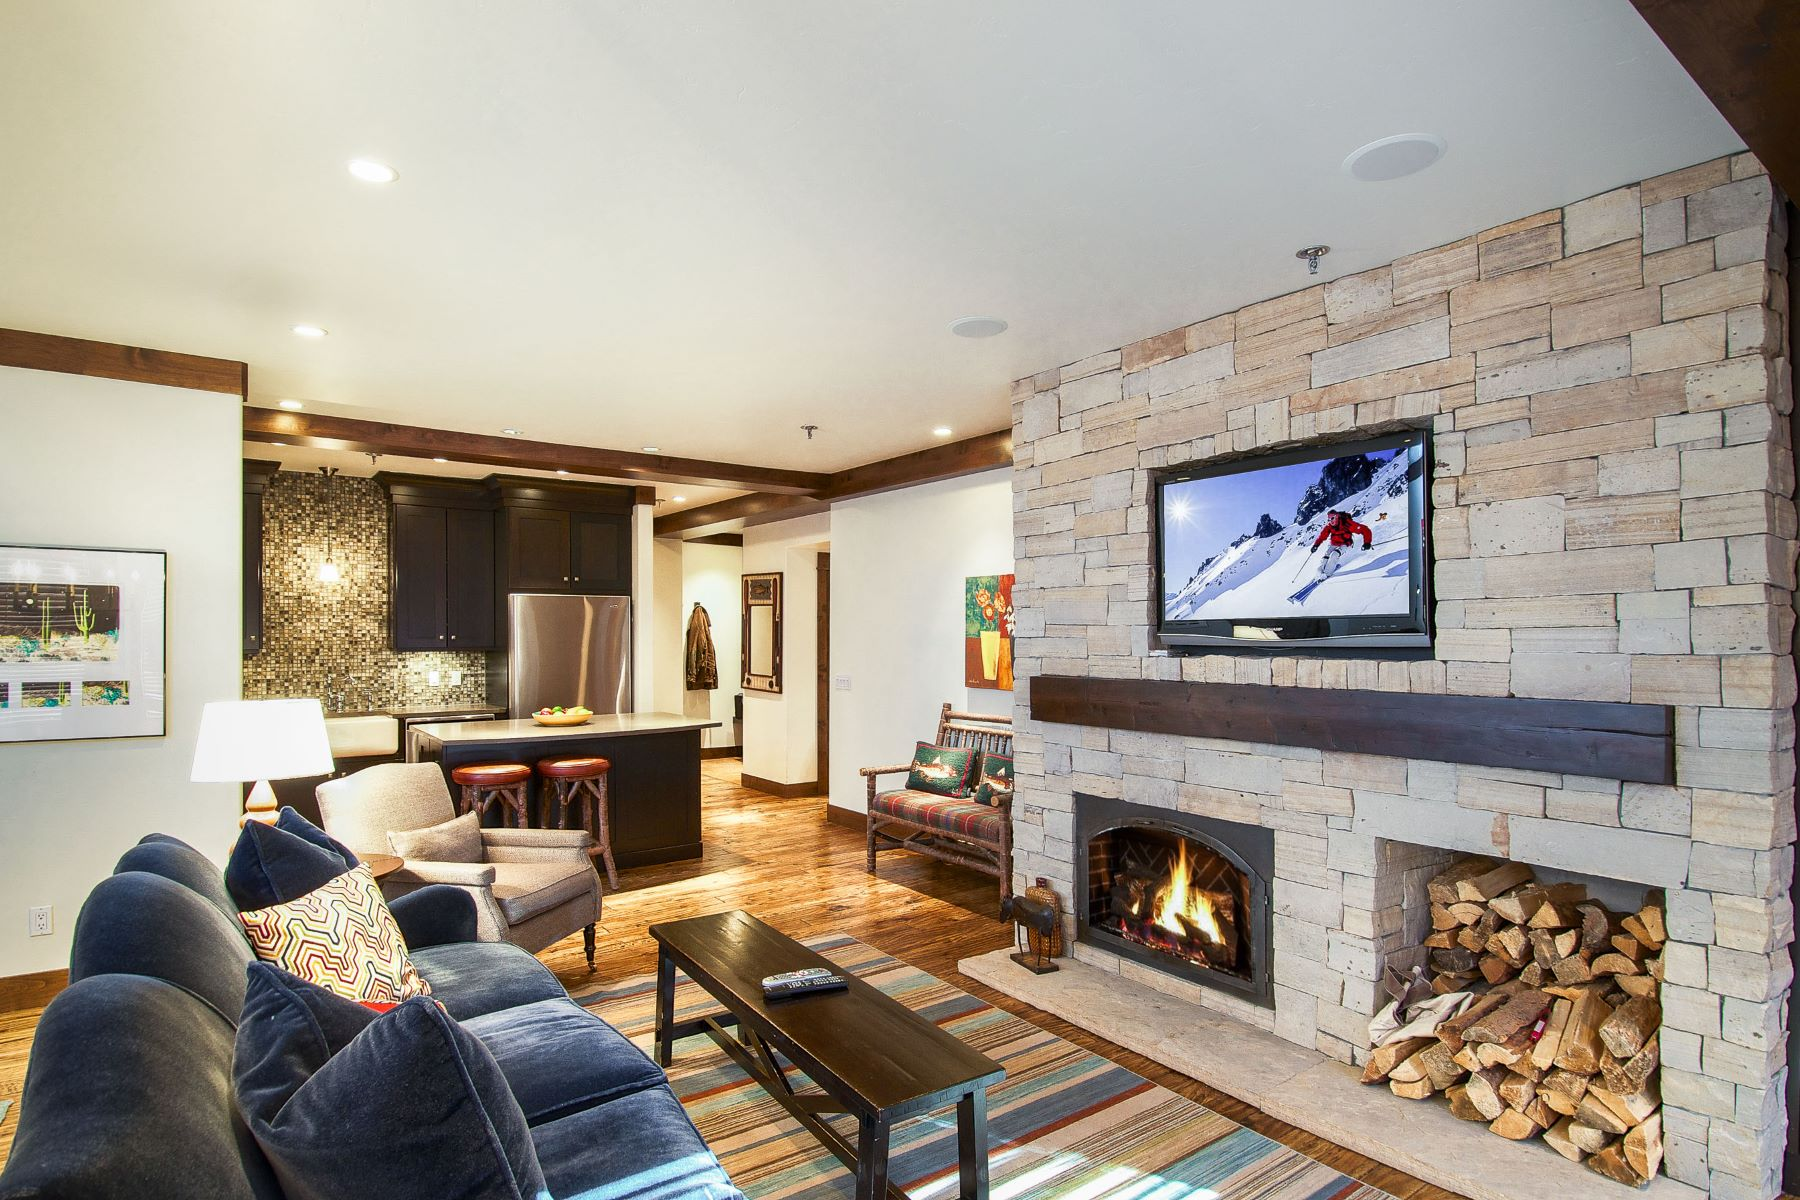 Copropriété pour l Vente à Larger than Most 425 Wood Road, Unit 20, Snowmass Village, Colorado, 81615 États-Unis